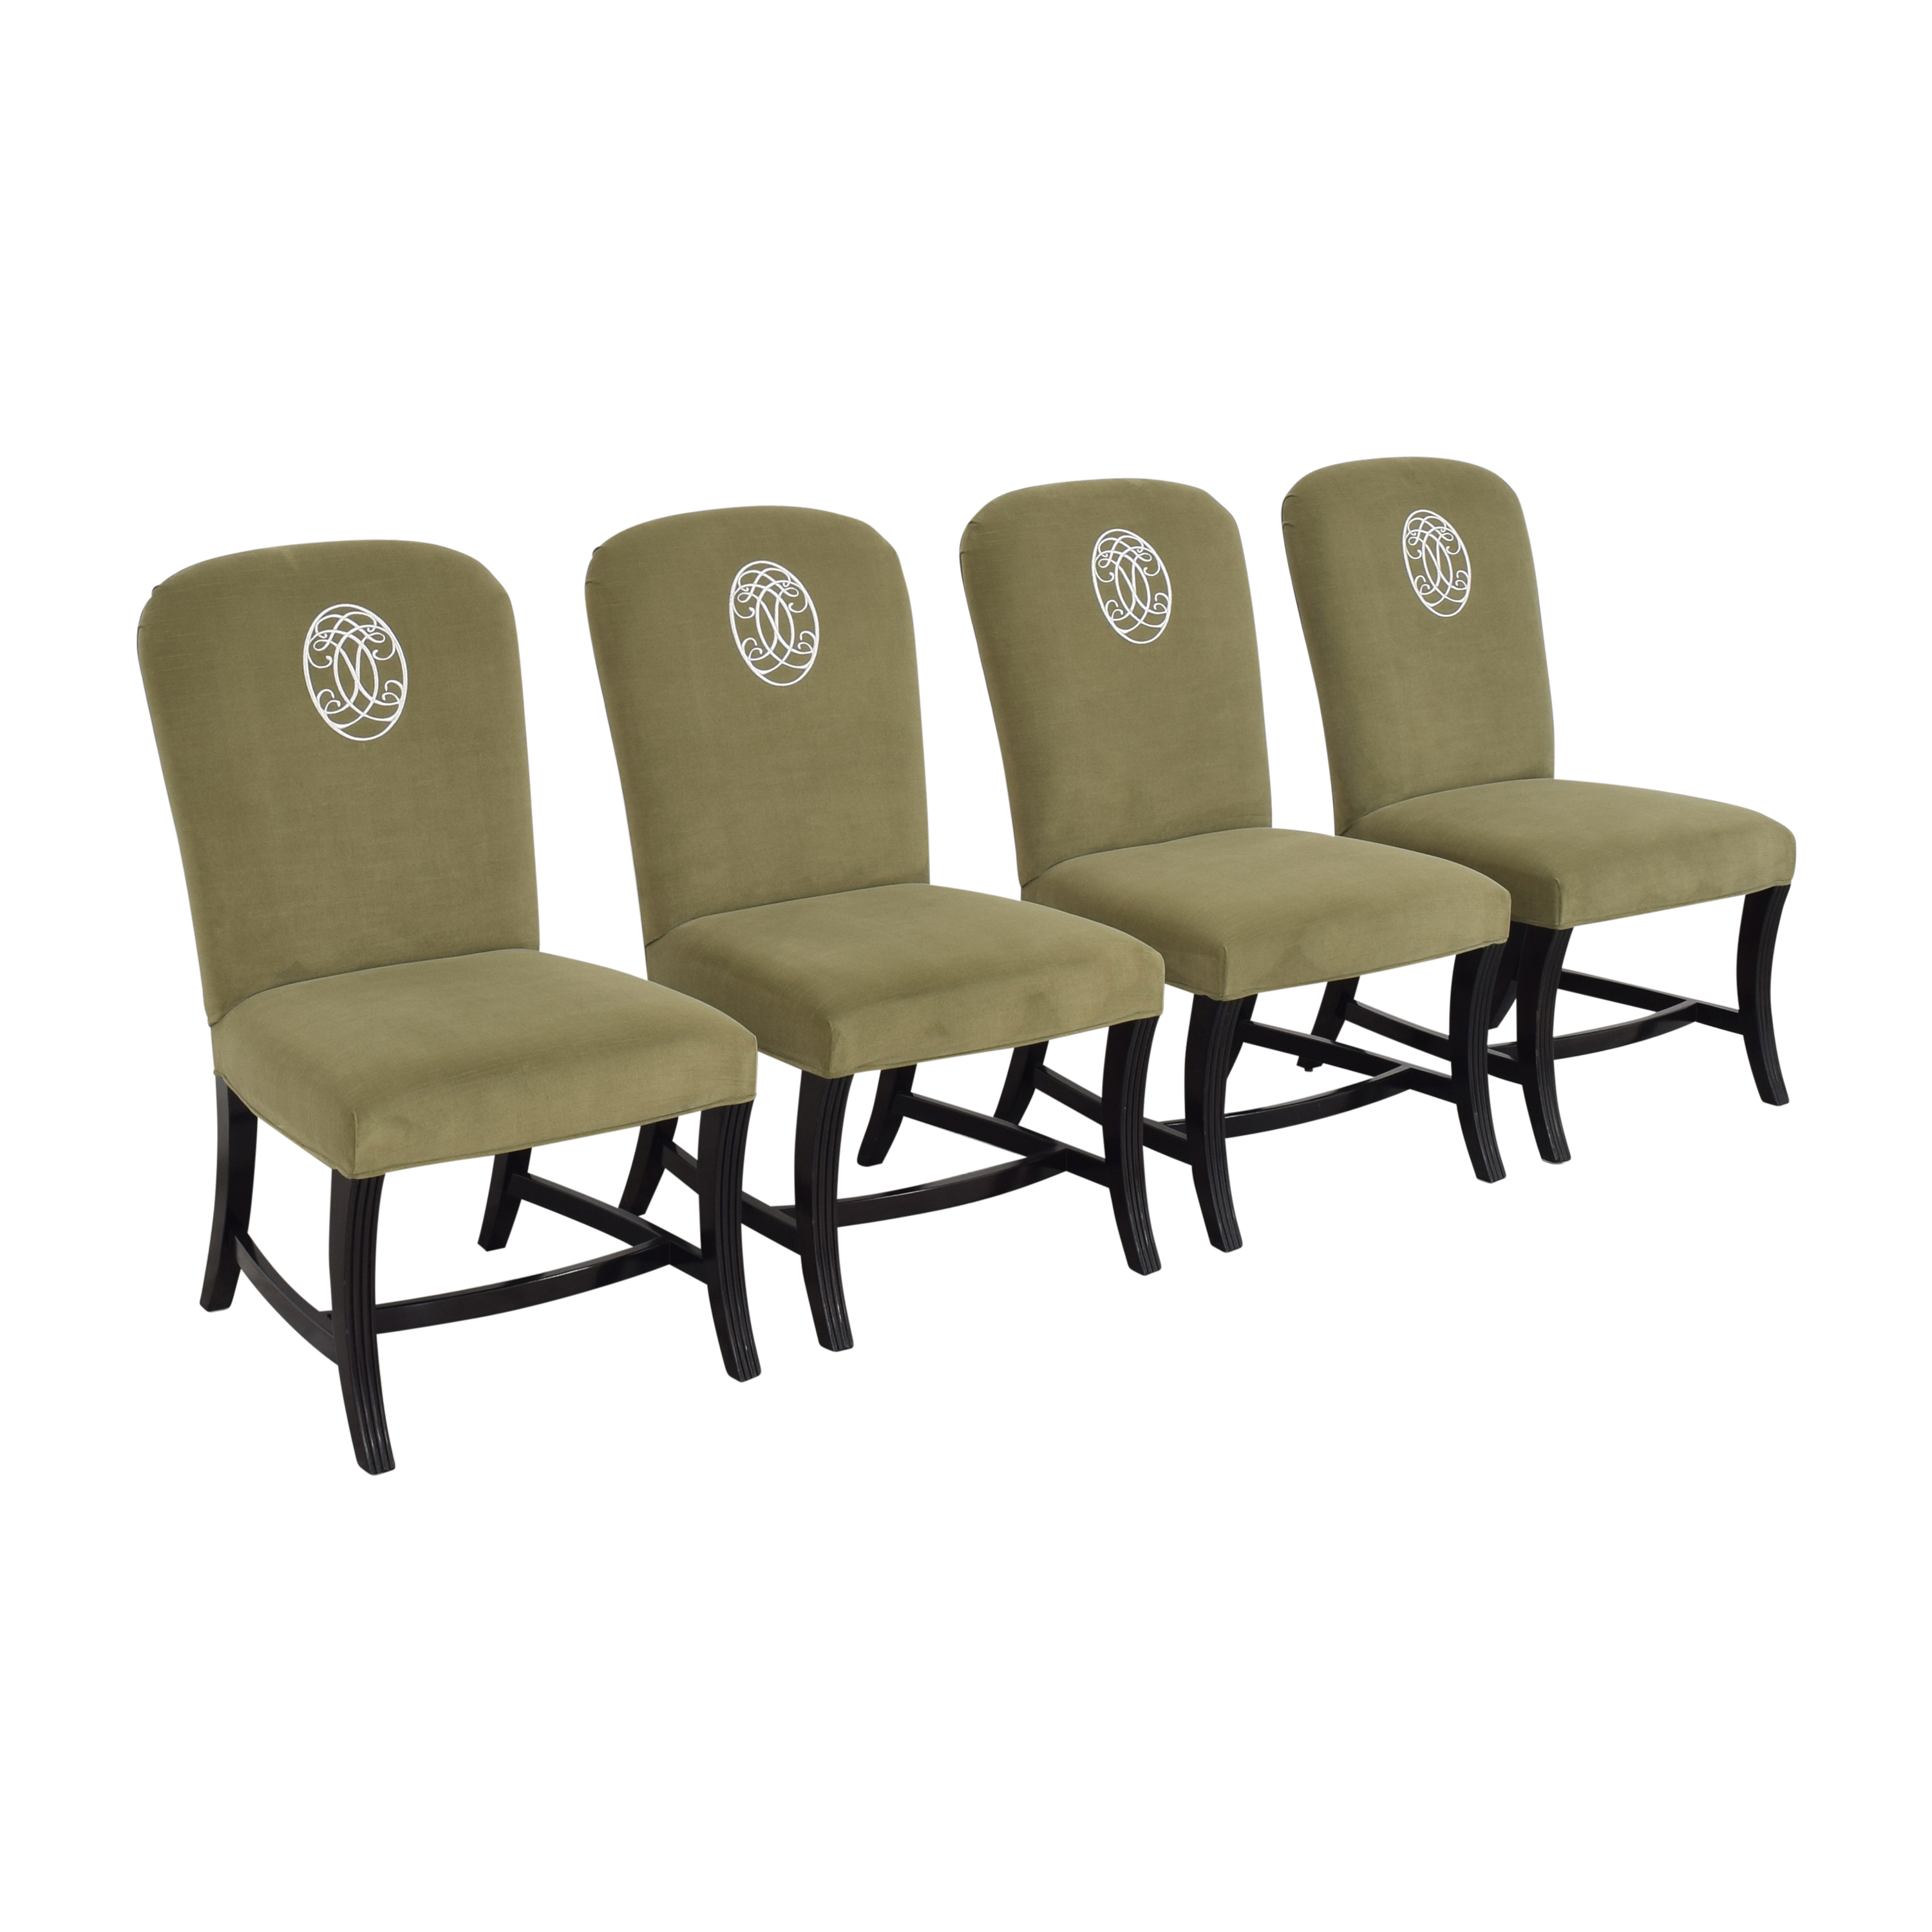 Drexel Heritage Drexel Heritage Upholstered Dining Chairs multi